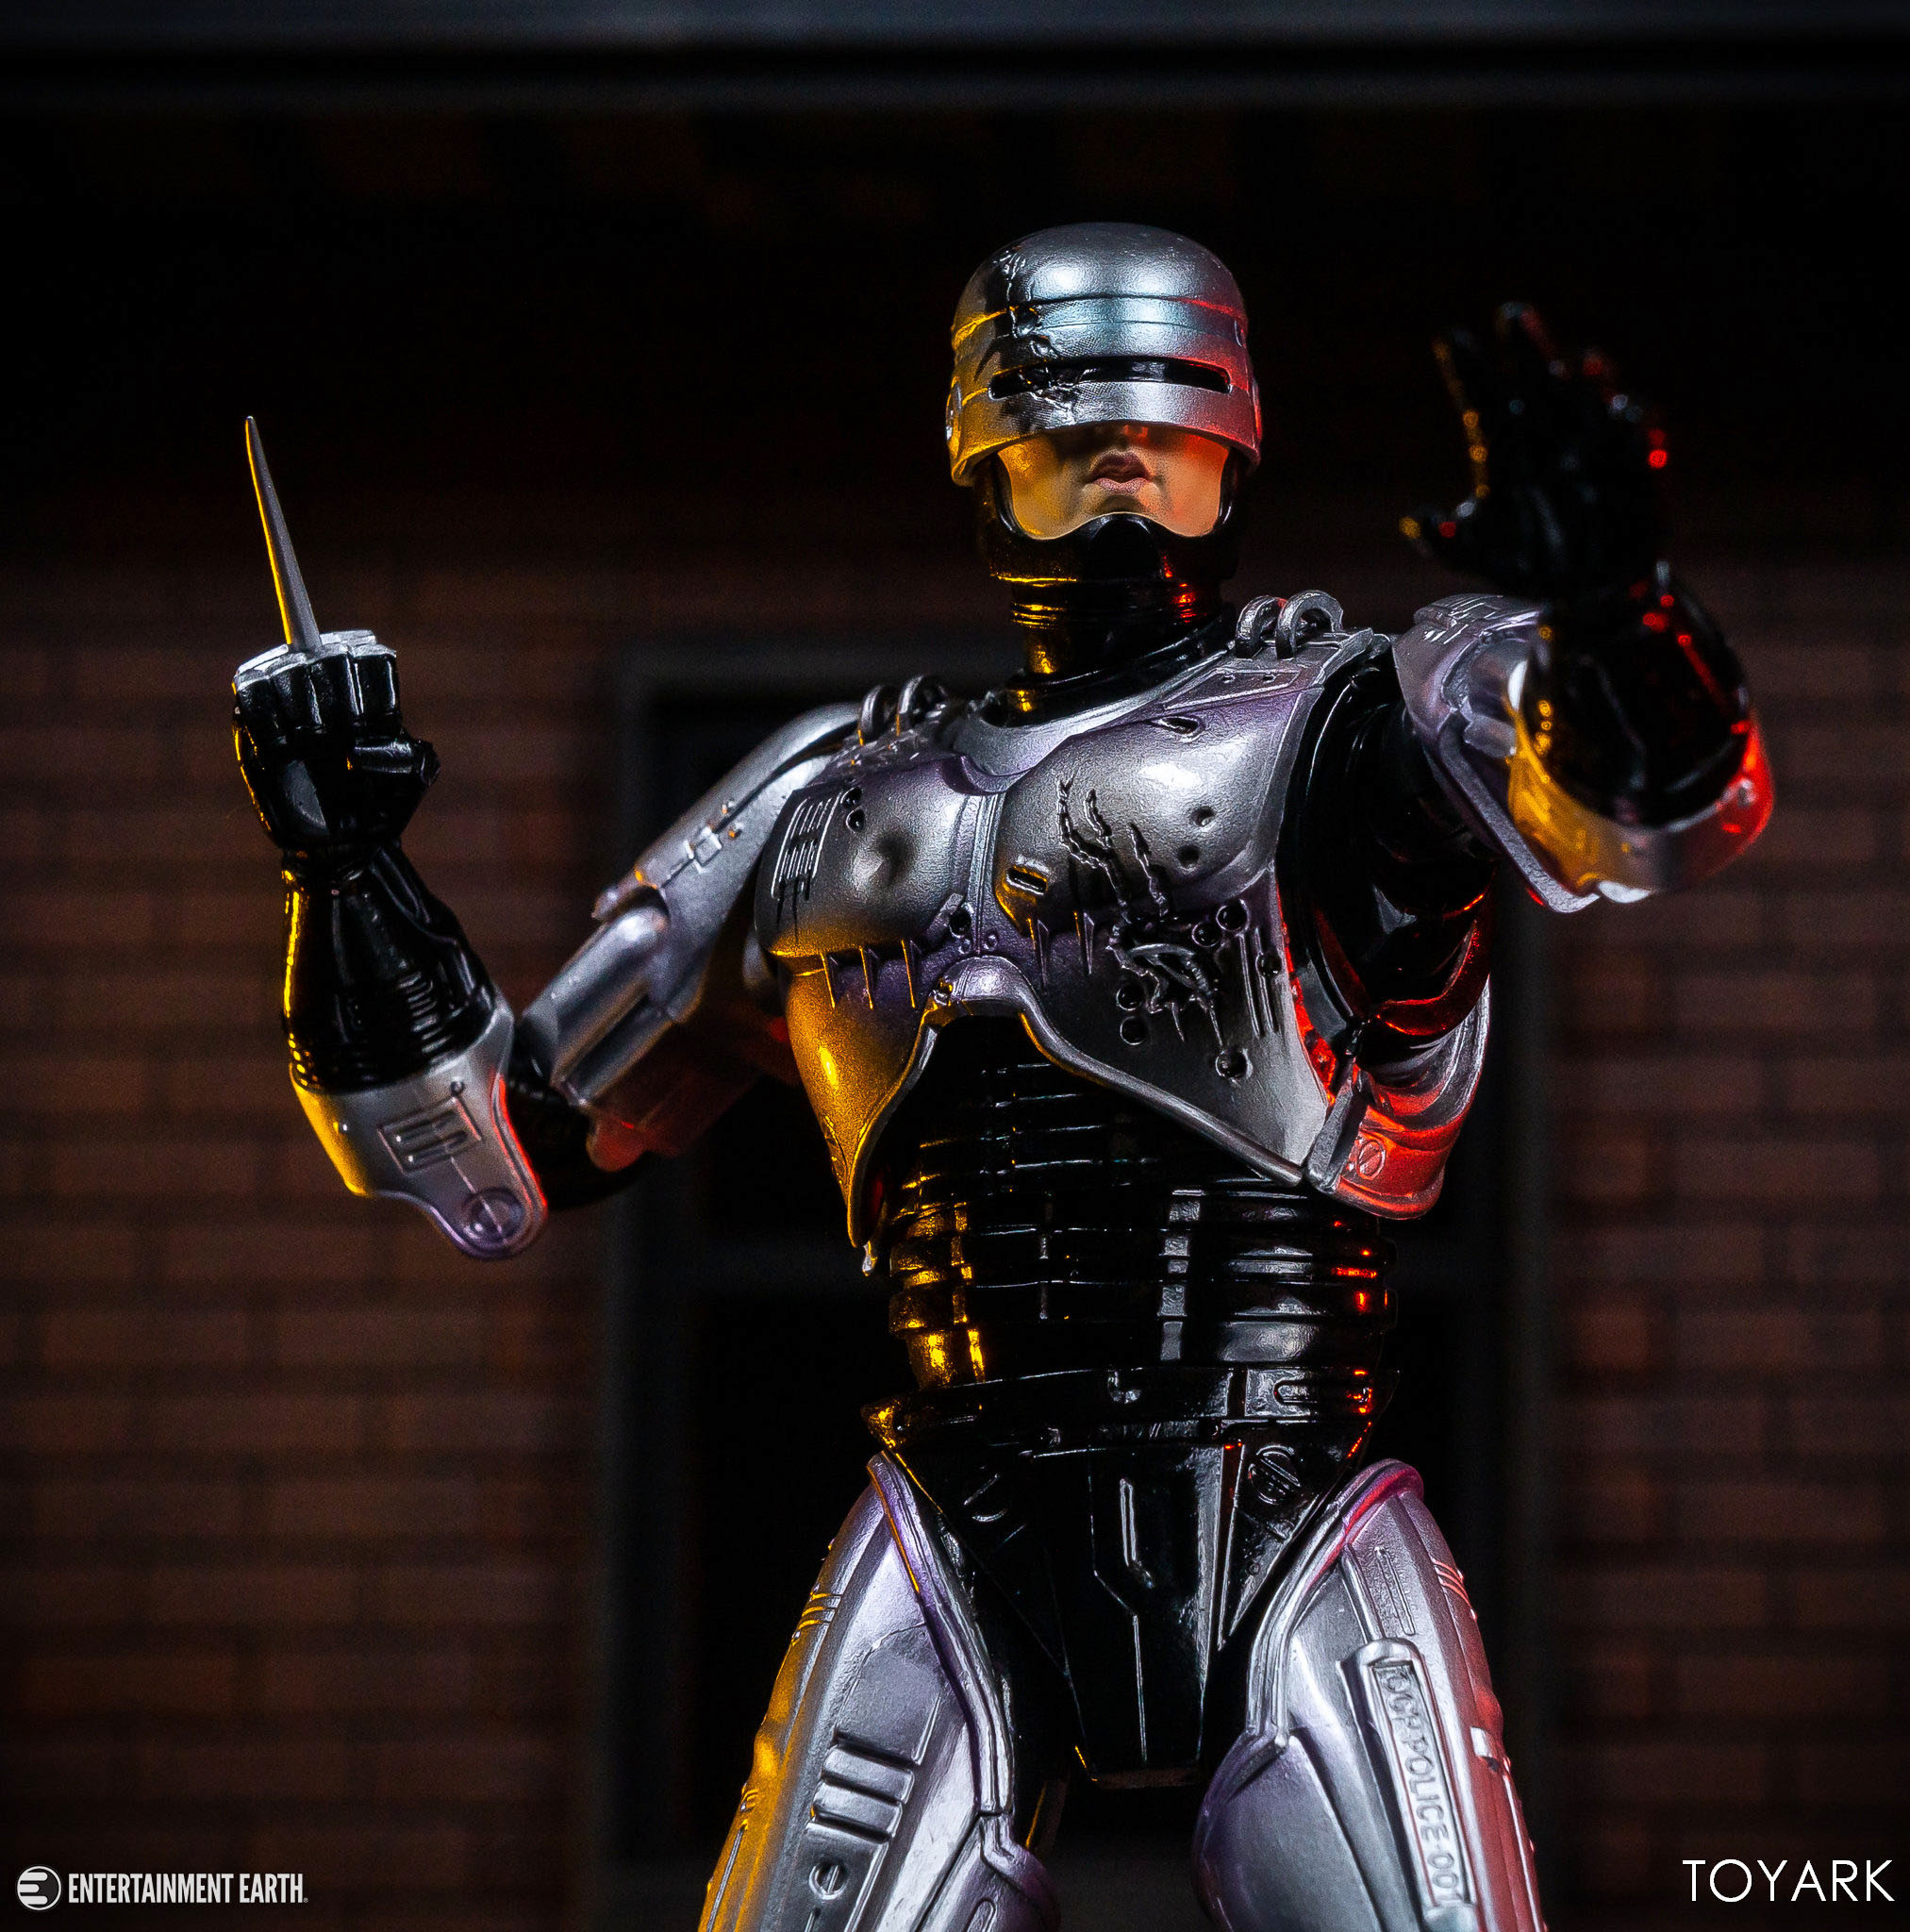 https://news.toyark.com/wp-content/uploads/sites/4/2019/03/MAFEX-Robocop-Gallery-029.jpg